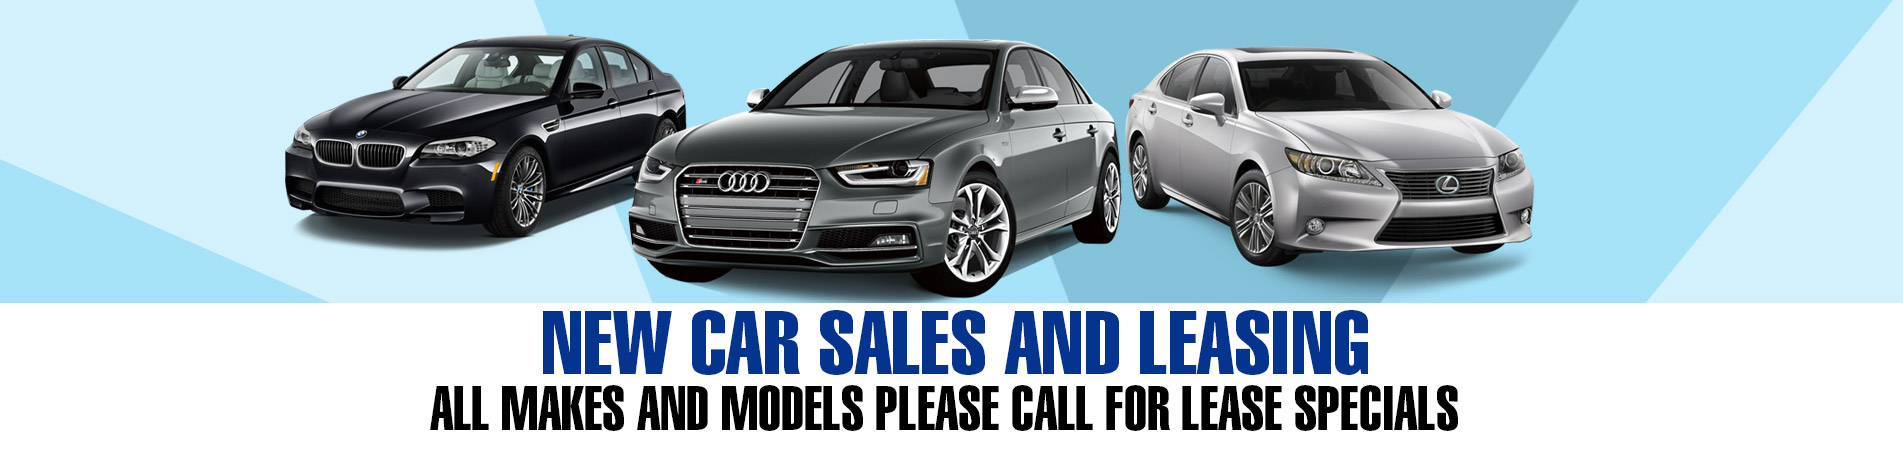 pre owned cars for sale in Franklin Square